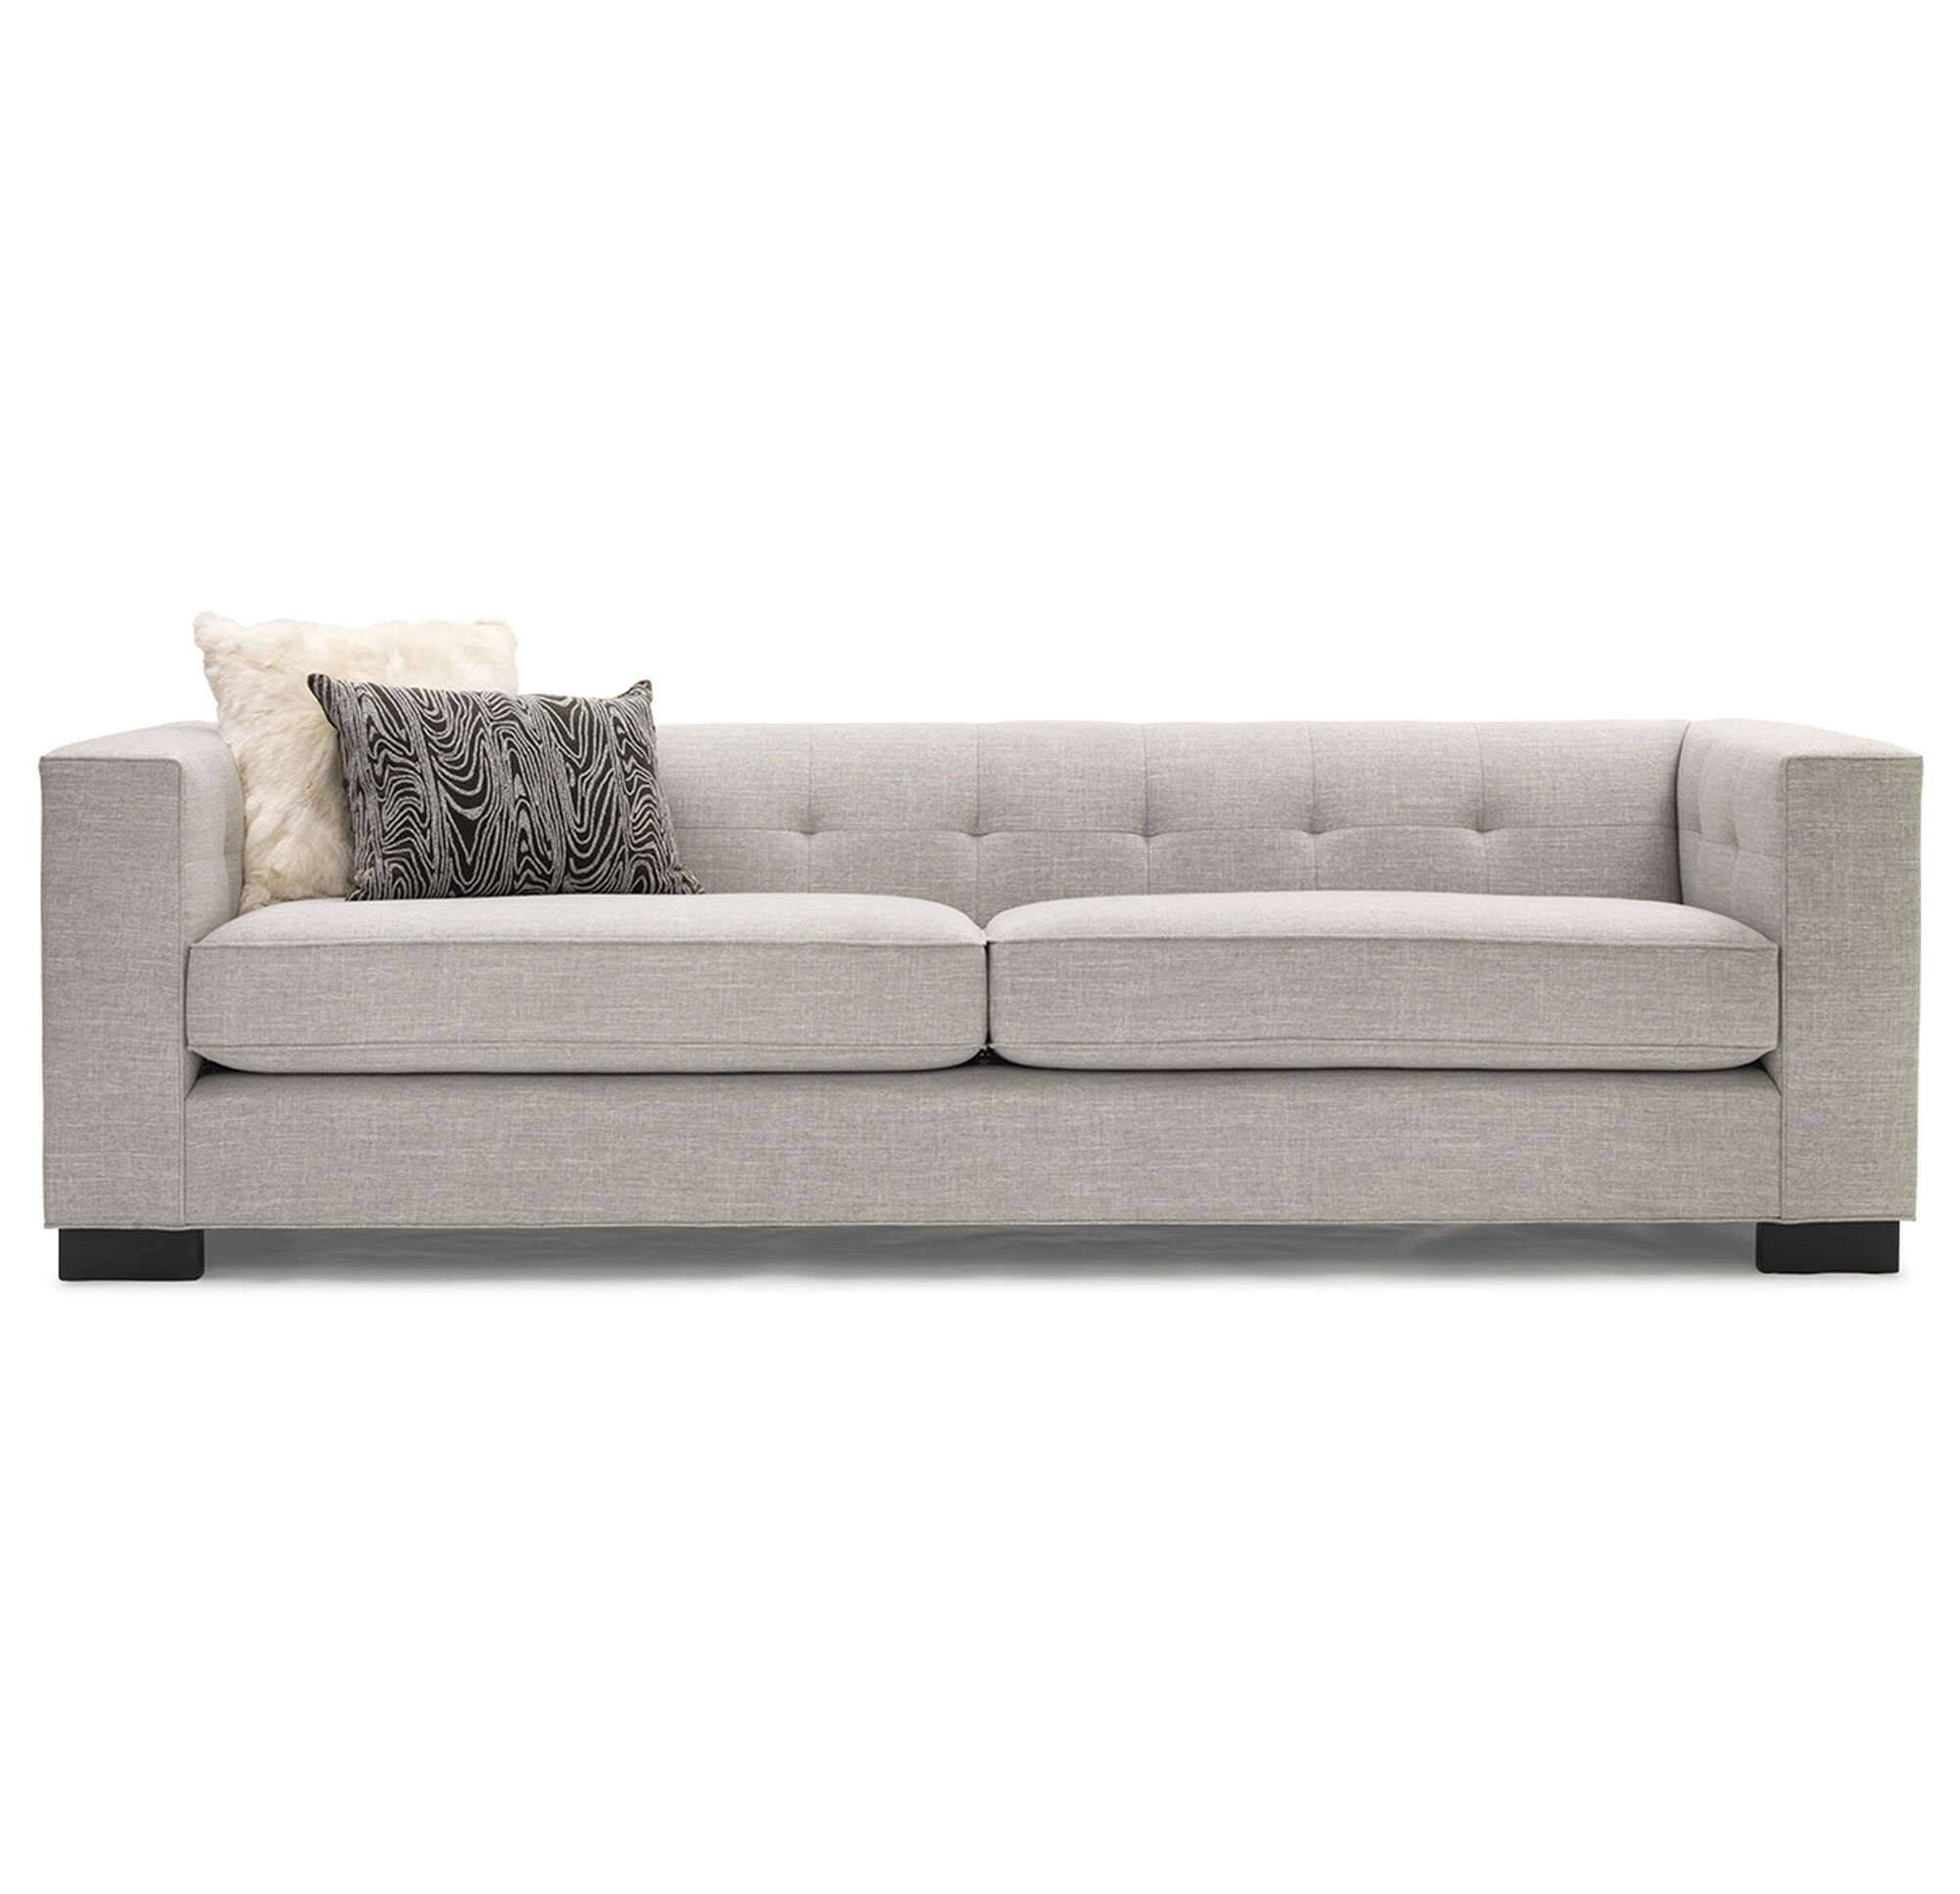 Mitchell gold sofa reviews - Mitchell Gold Sofa Reviews 13